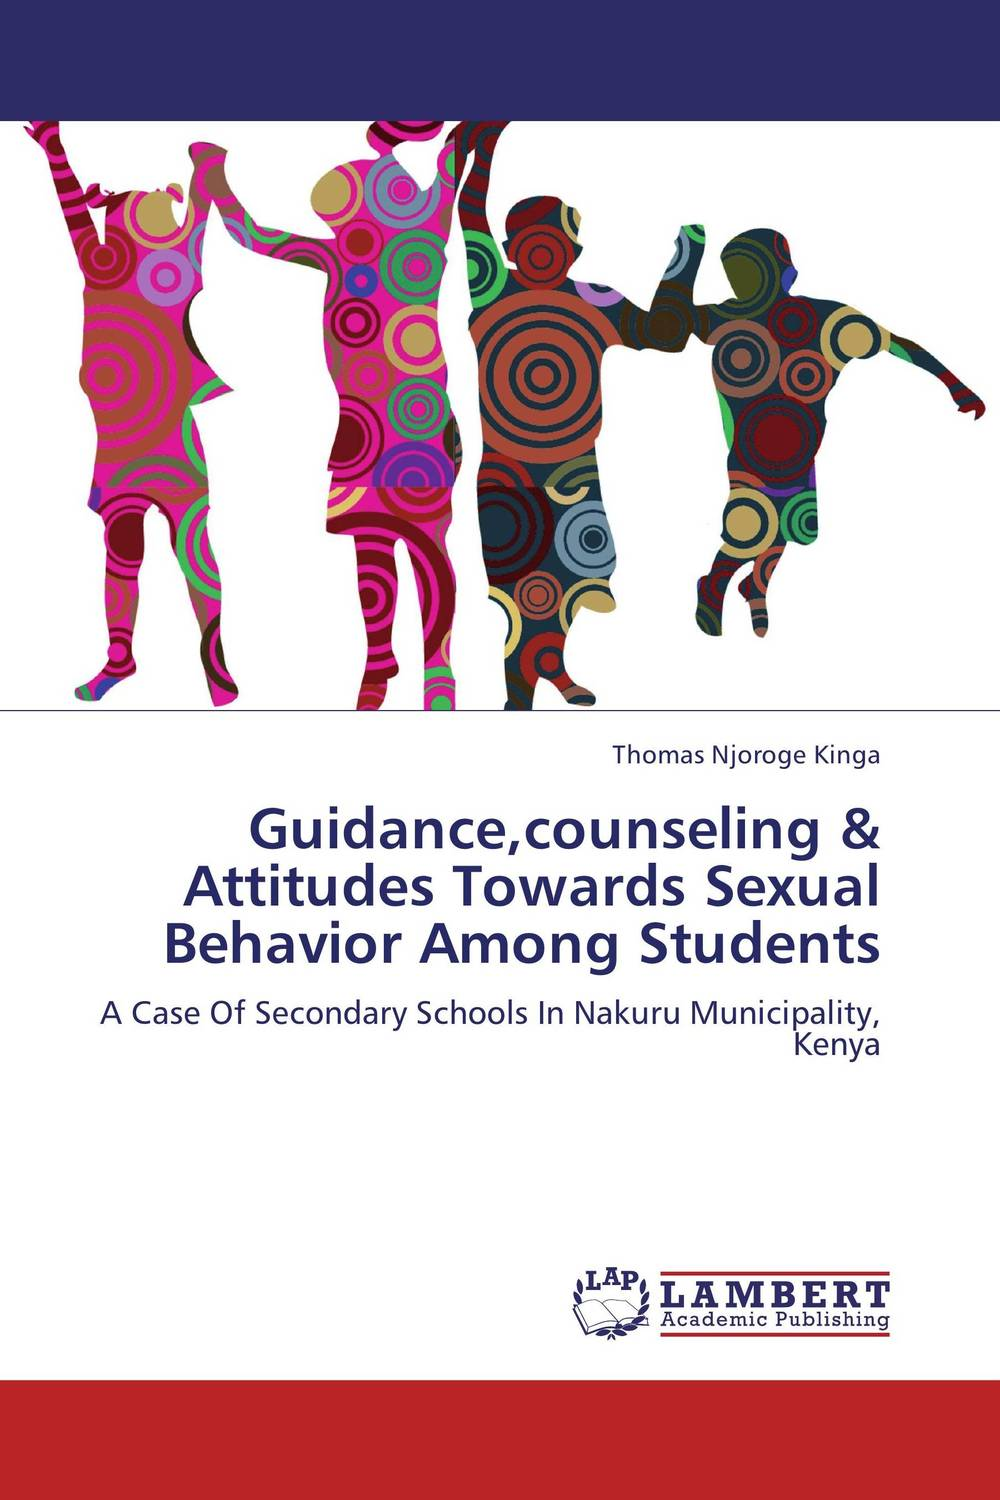 цена на Guidance,counseling & Attitudes Towards Sexual Behavior Among Students